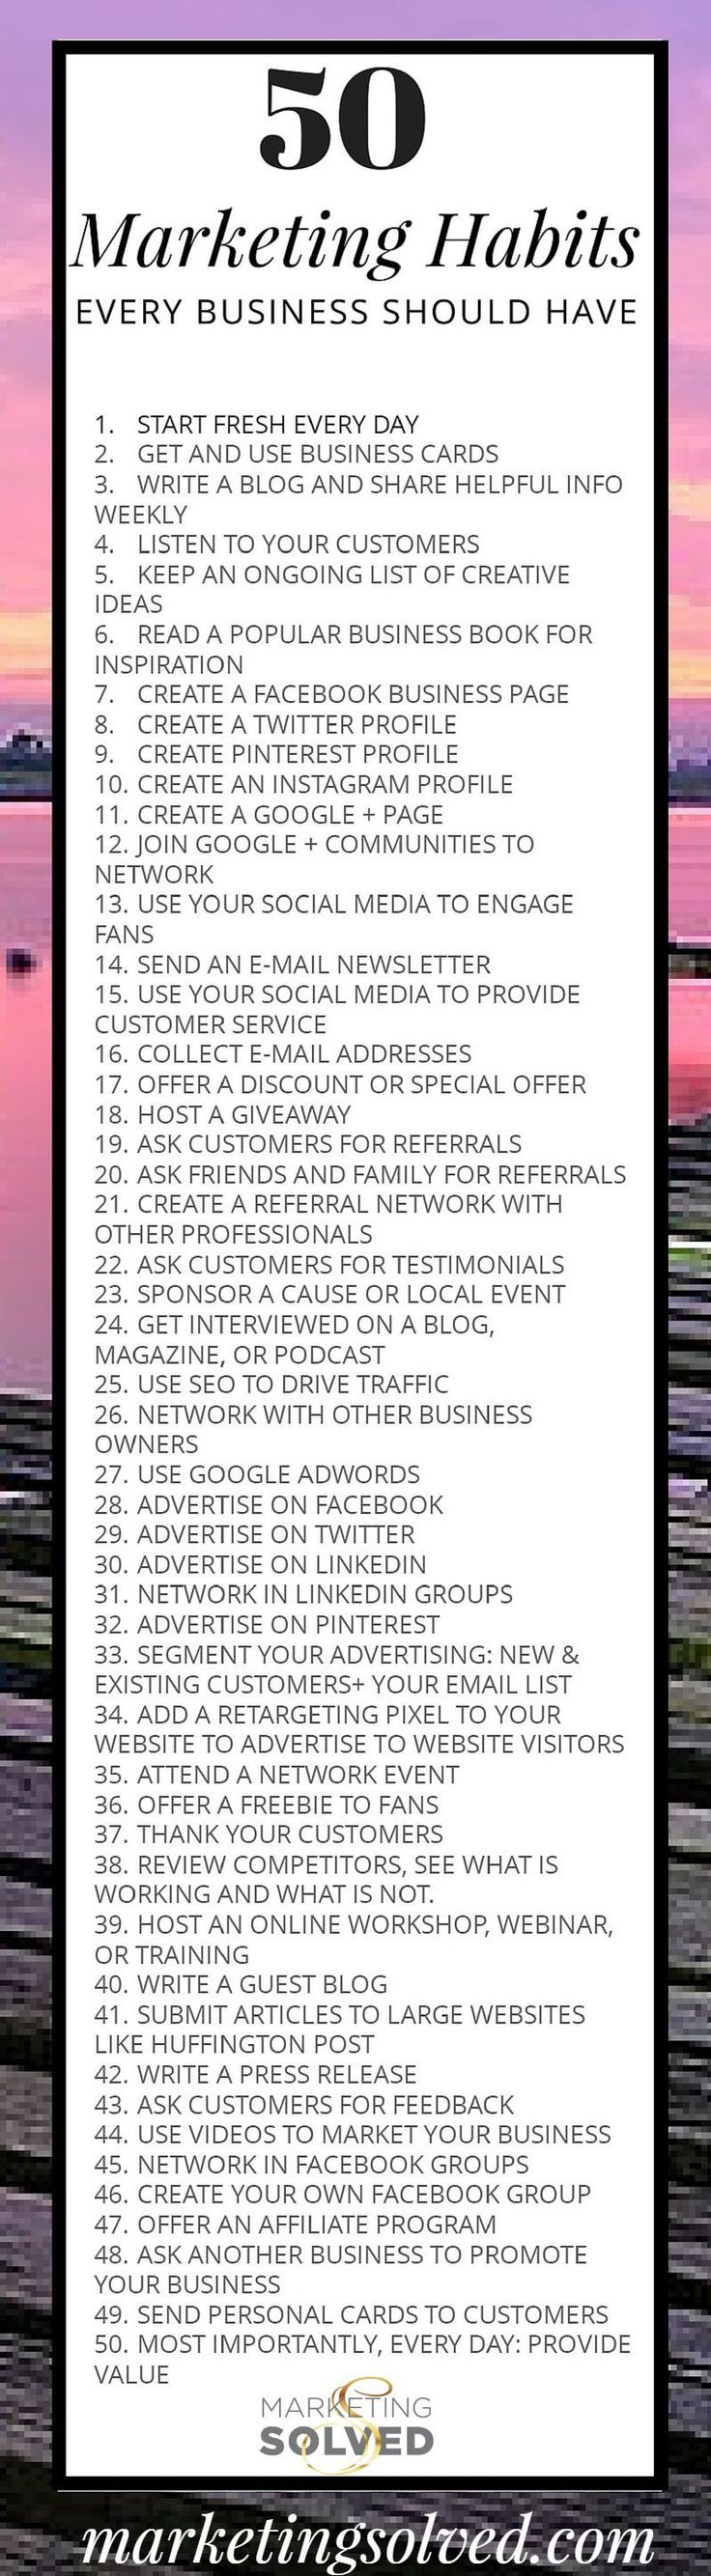 wedding planning checklist spreadsheet free%0A    Easy  Way To Discover How Google Sees Your Articles